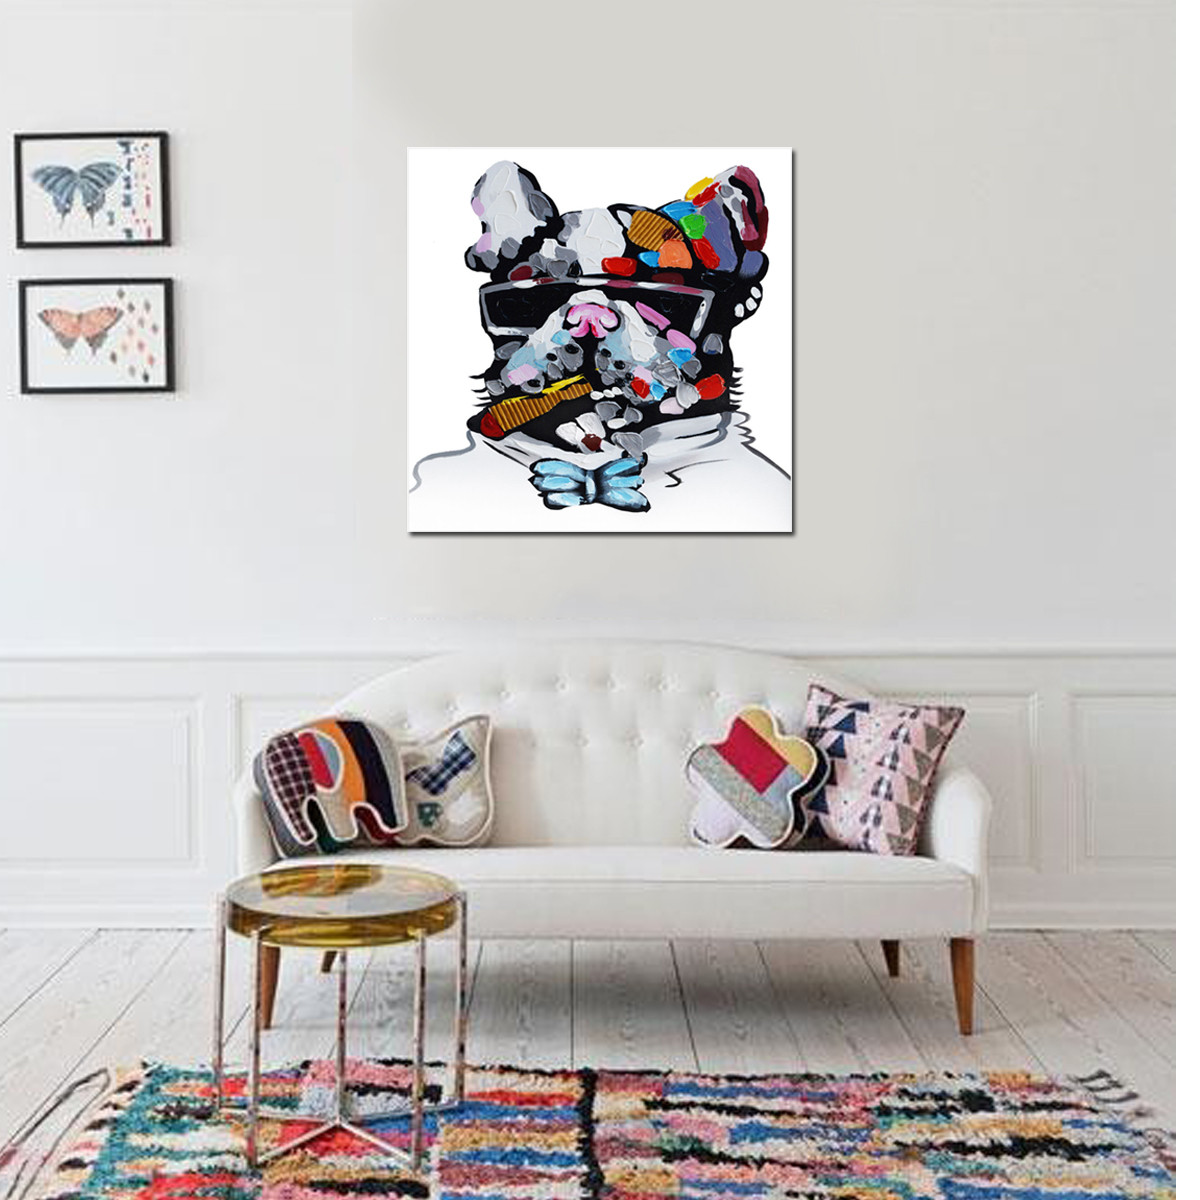 Unframed canvas prints home decor wall art abstract dog animal painting picture intl lazada - Canvas prints home decor photos ...